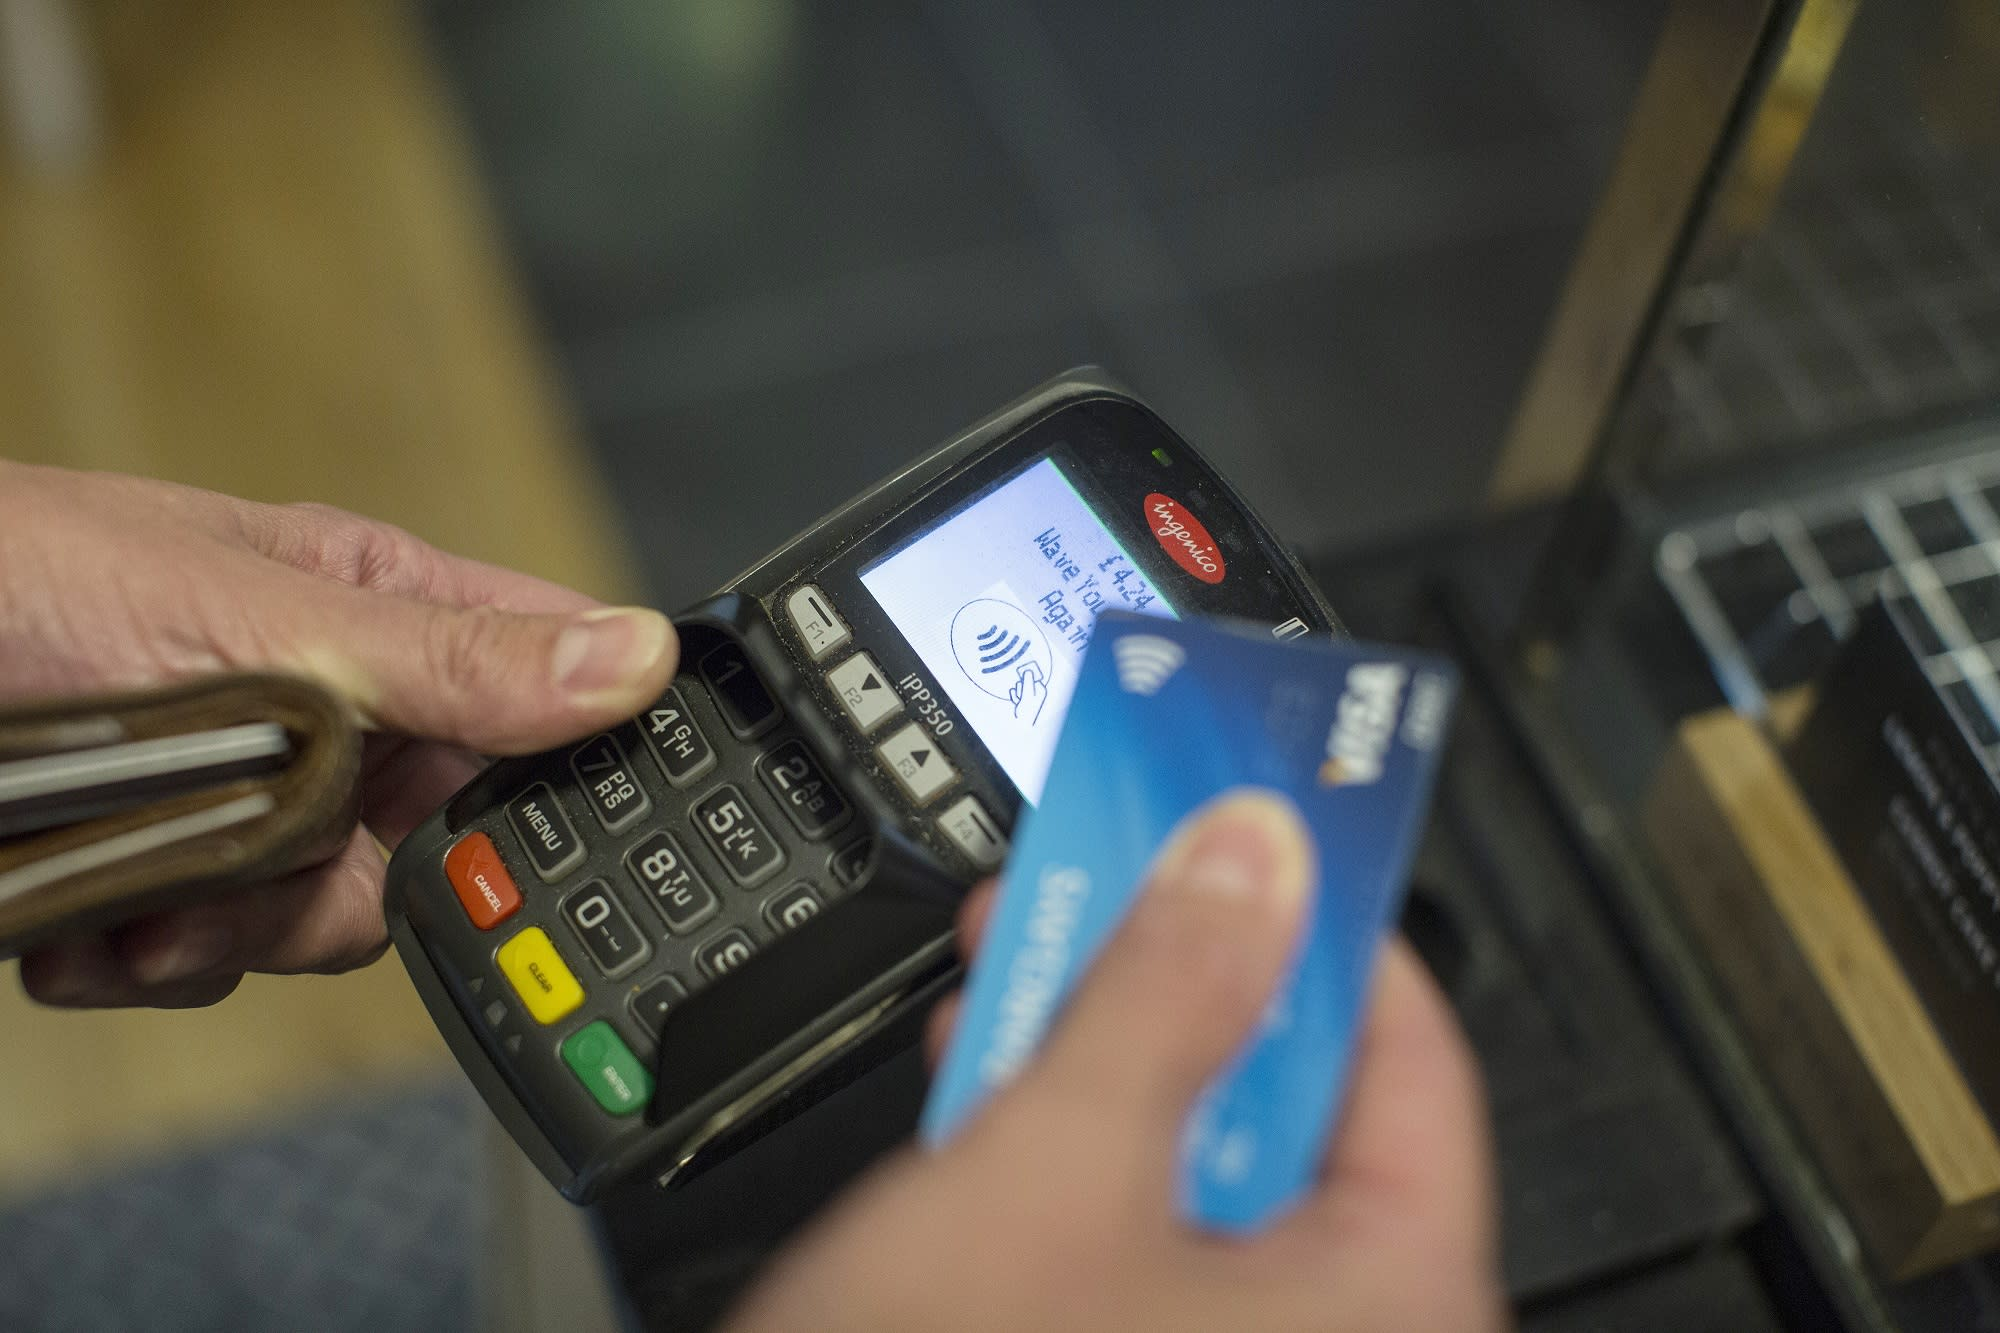 Digital payments expected to hit 726 billion by 2020 — but cash isn't going anywhere yet